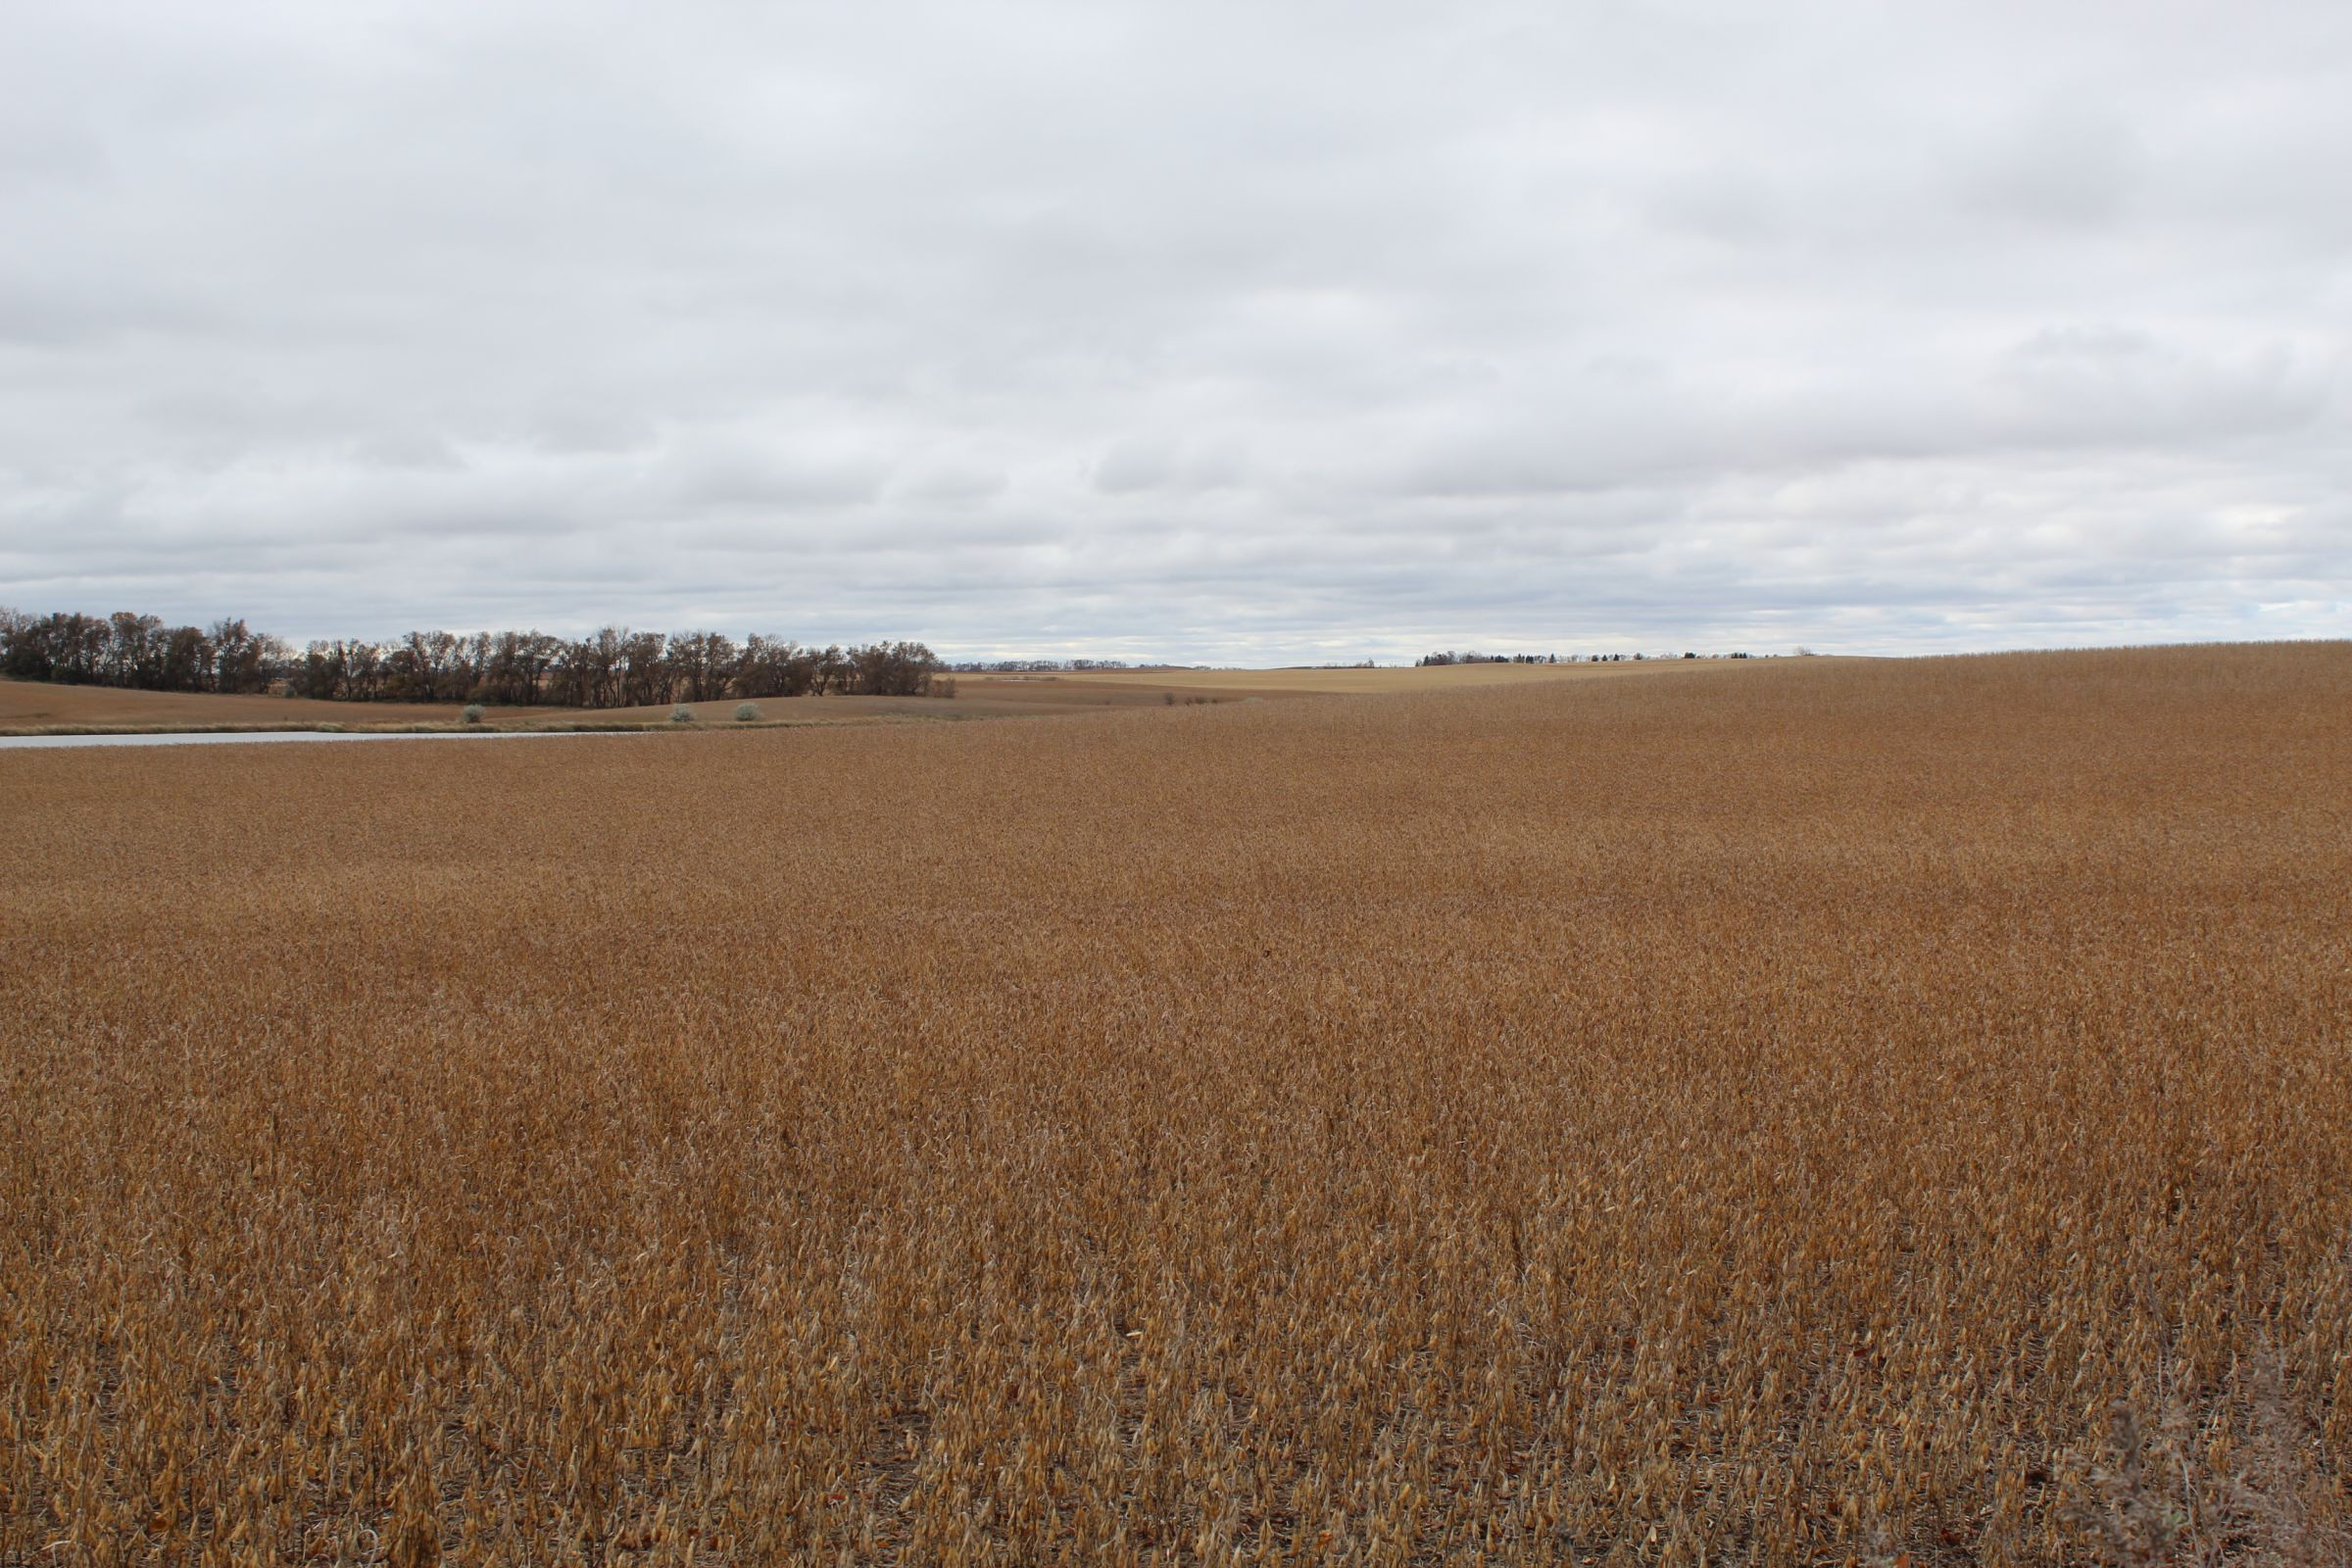 stutsman-county-north-dakota-312-acres-listing-number-15116-2-2020-08-12-141906.JPG